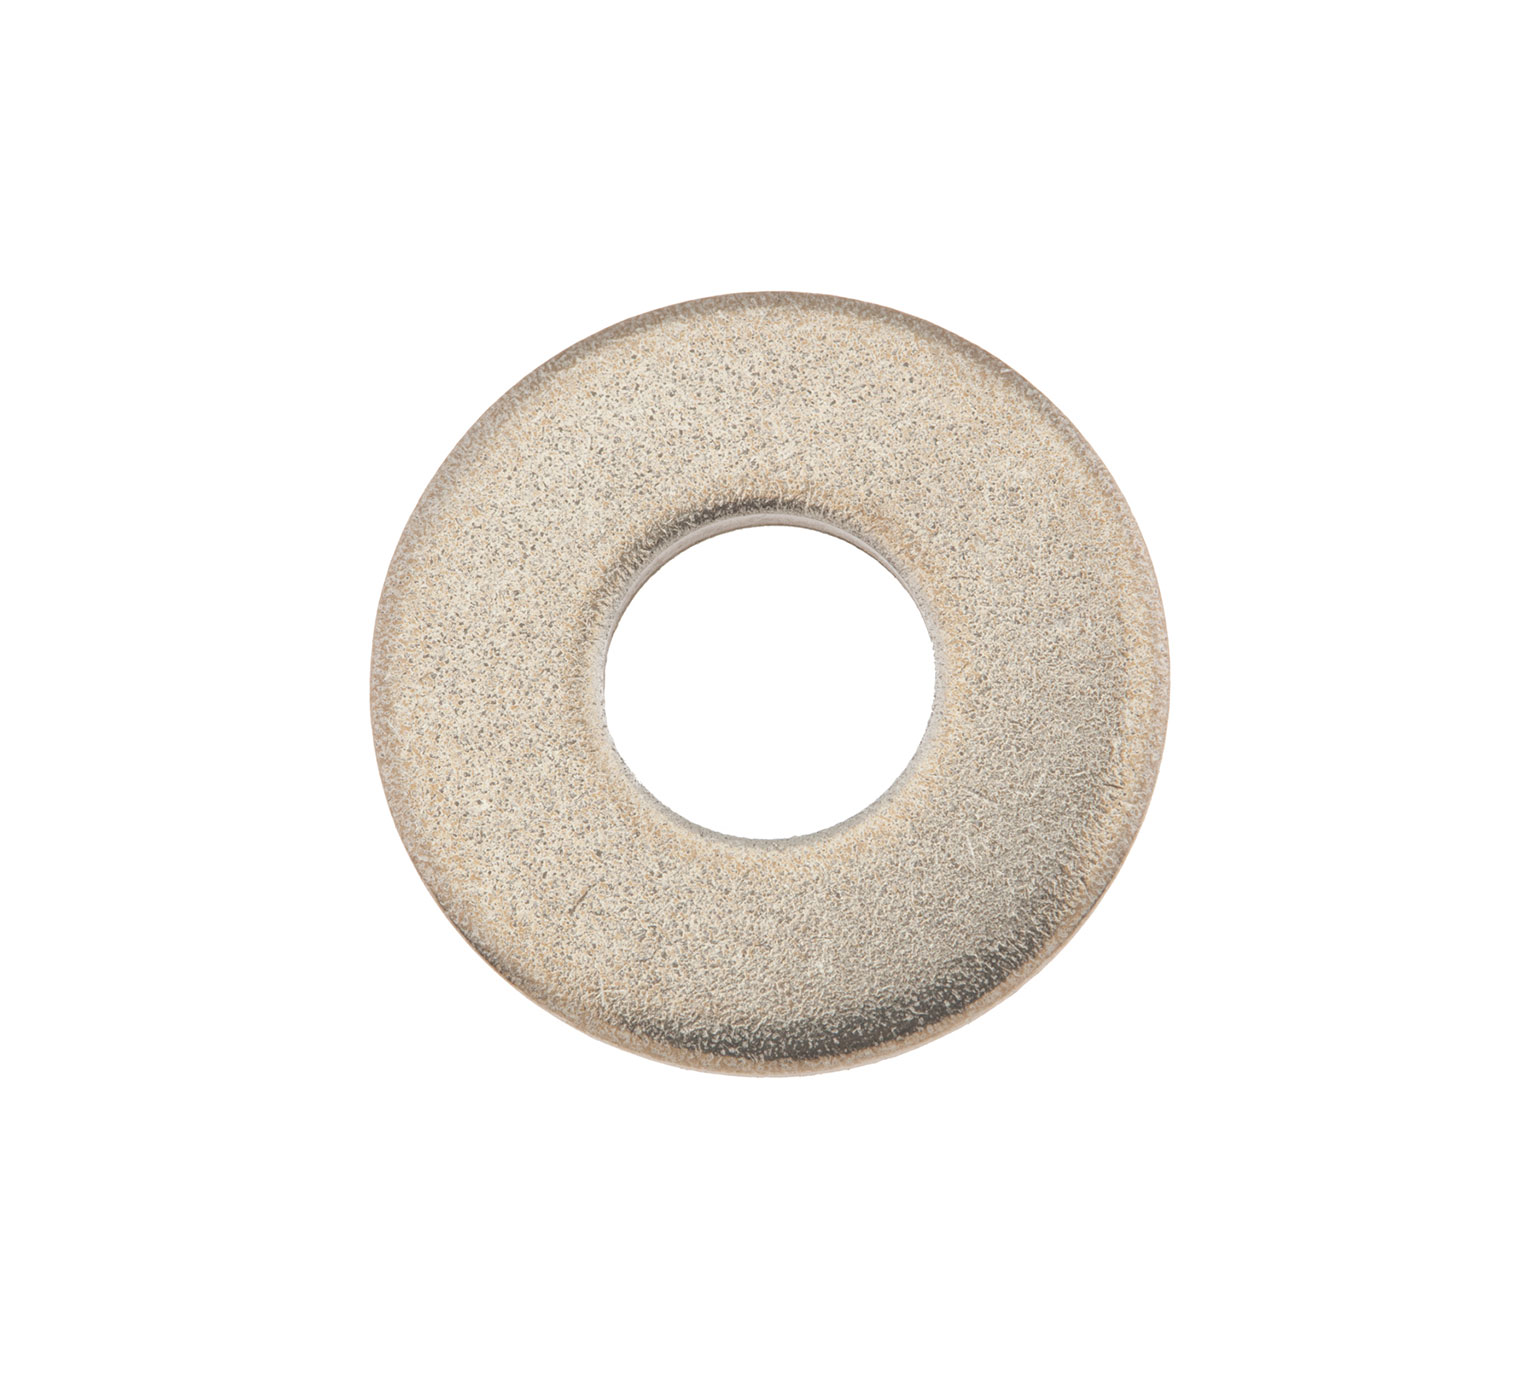 41619 Stainless Steel Flat Washer - 1.375 OD x 0.562 ID x 0.109 in alt 1